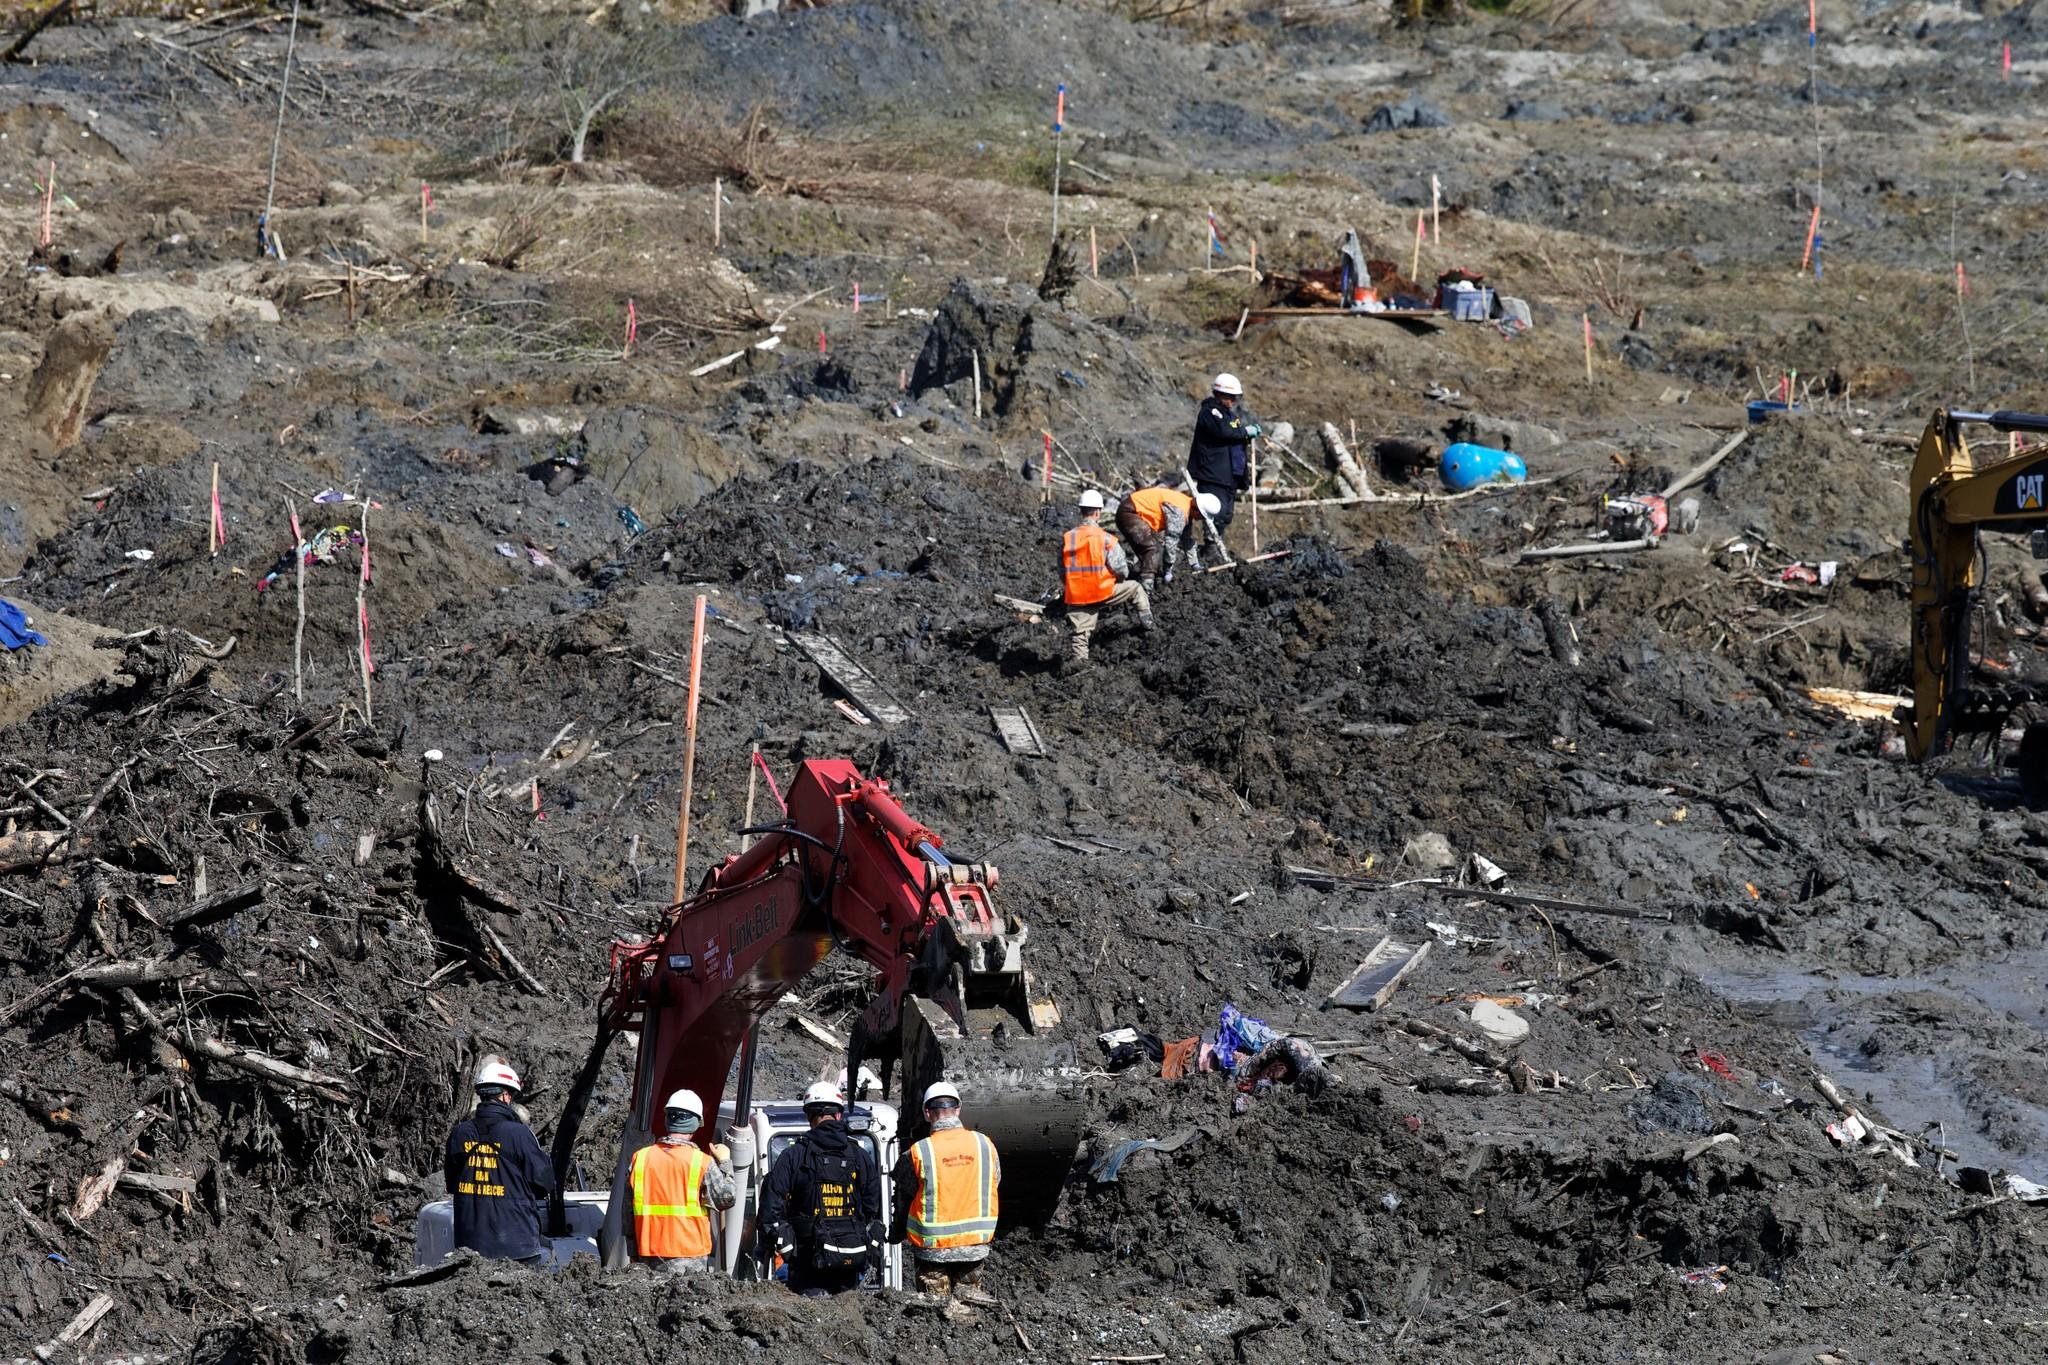 Search-and-rescue personnel continue the search for bodies buried in mud after the landslide in Oso, Wash. Thirty-nine bodies have been recovered from the scene.